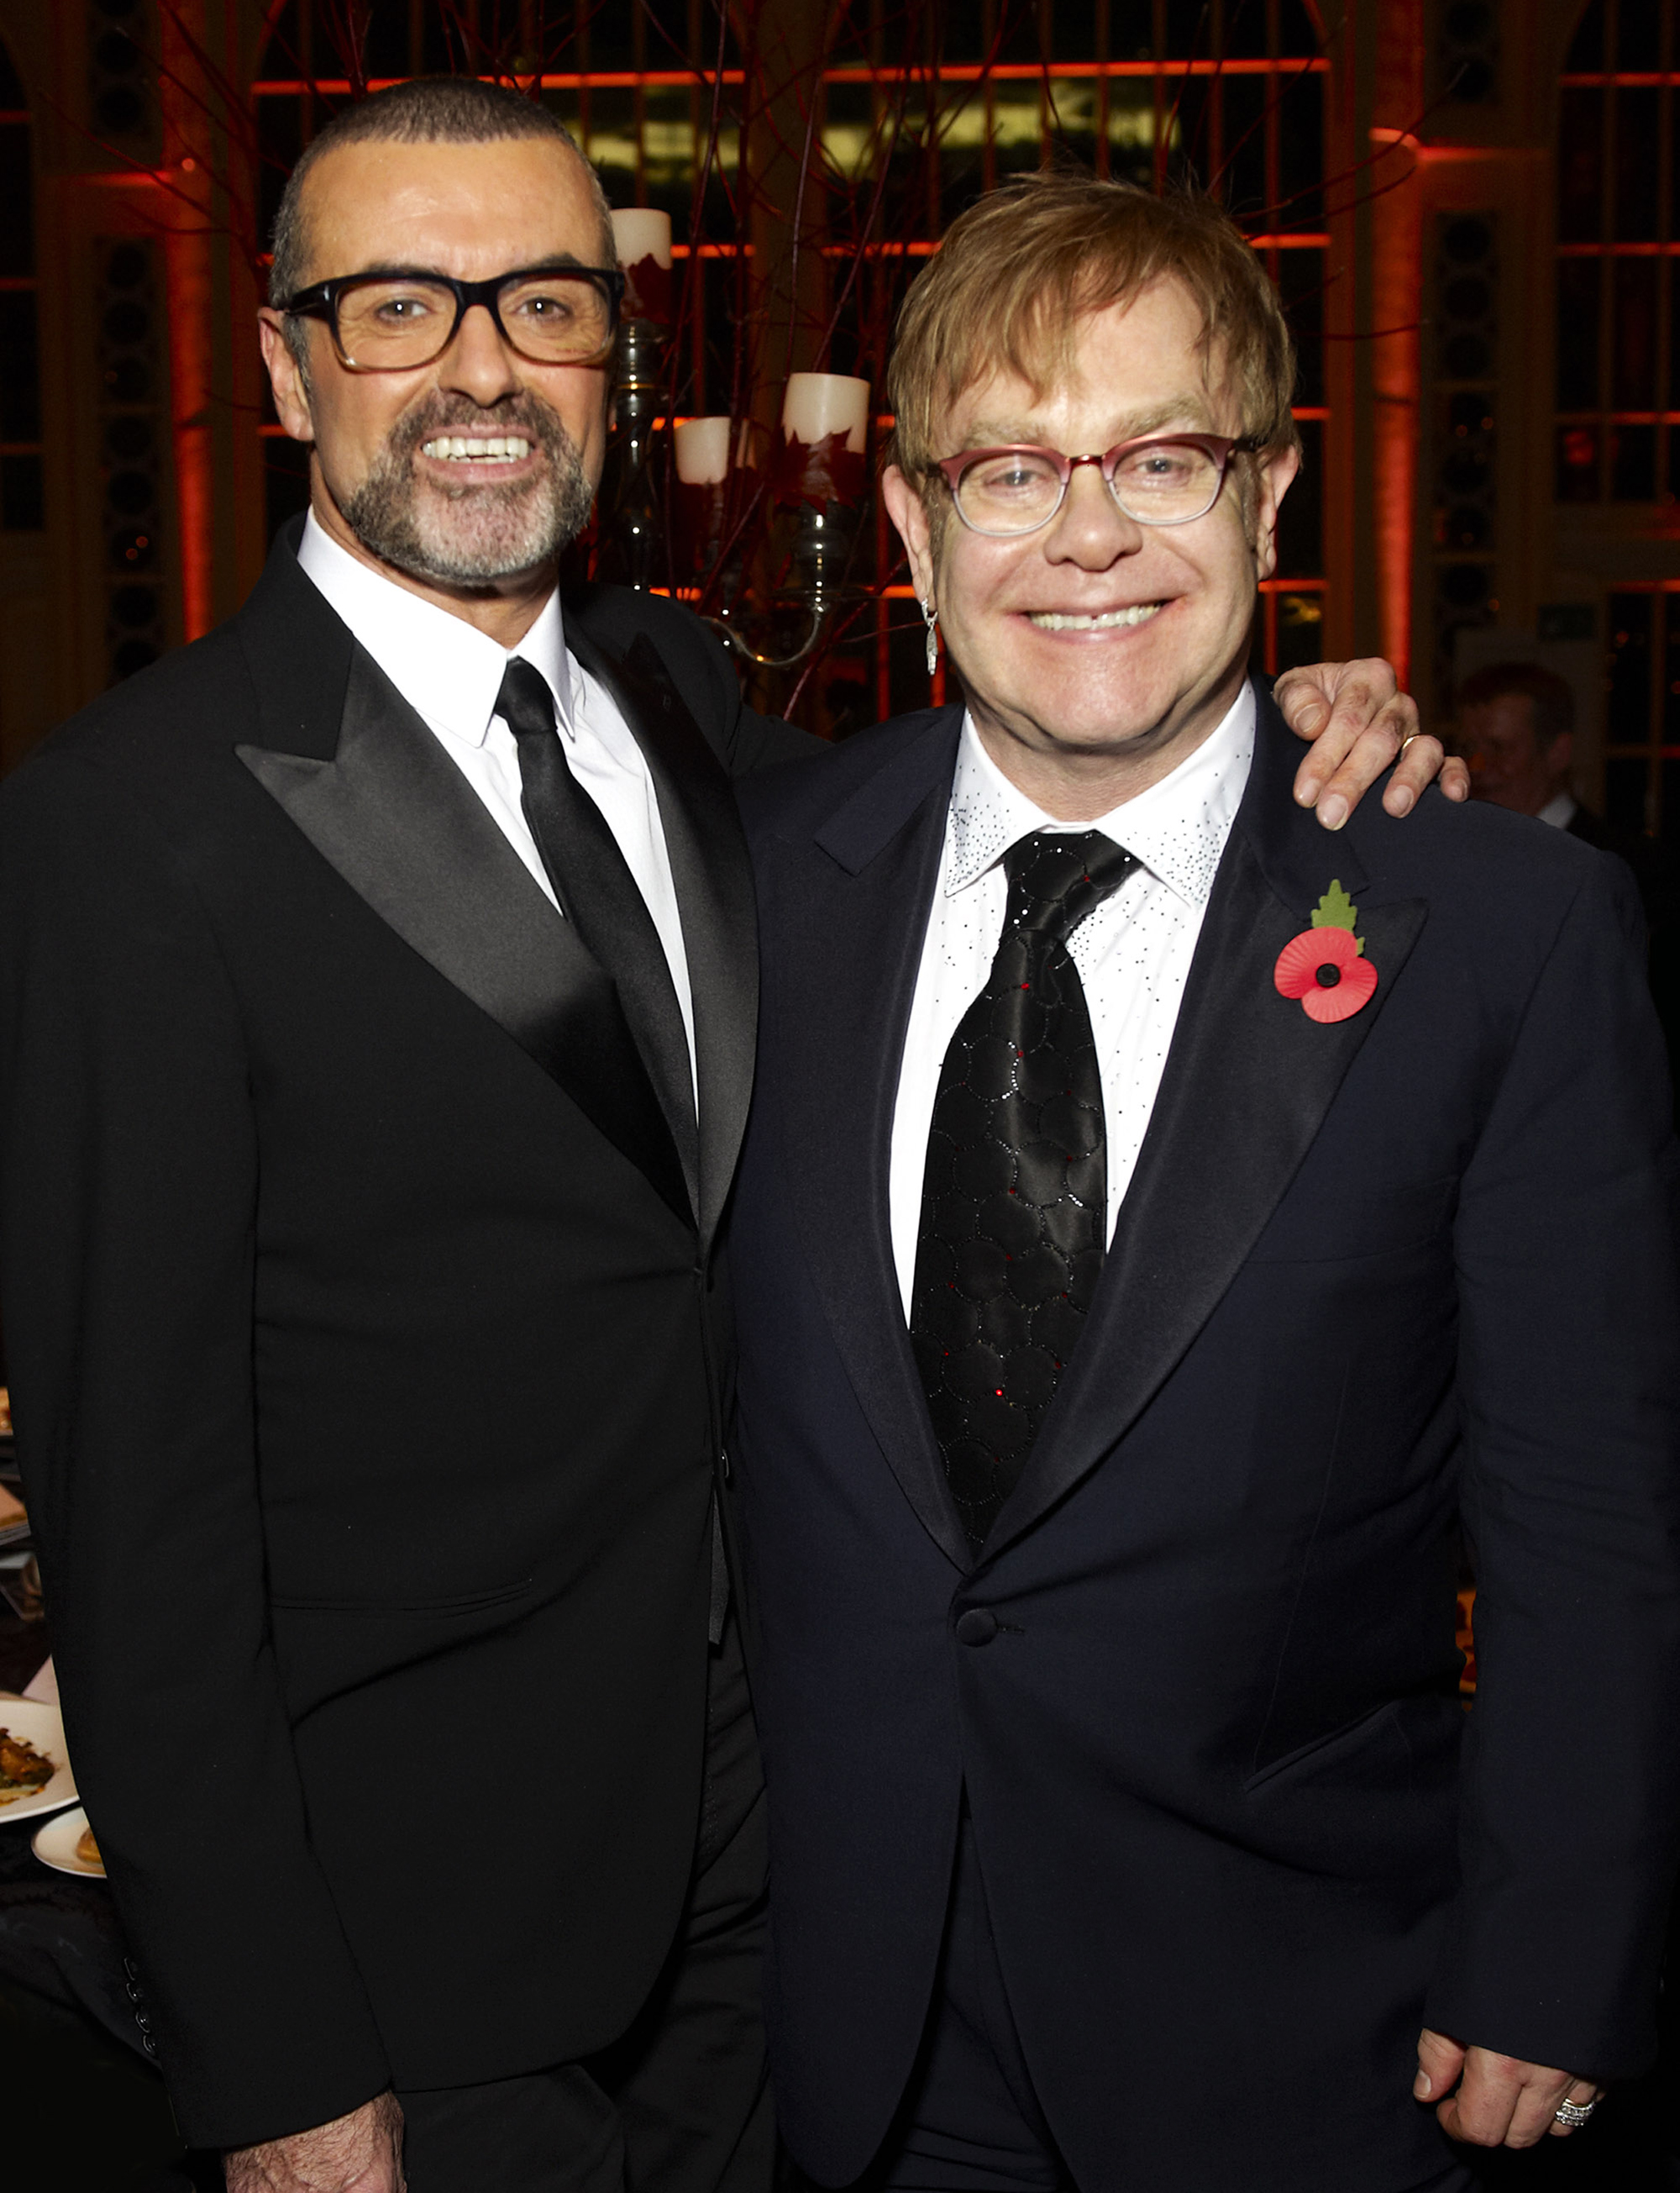 George Michael and Elton John attend a charity performance benefiting the Elton John AIDS Foundation in London, on Nov. 6, 2011.